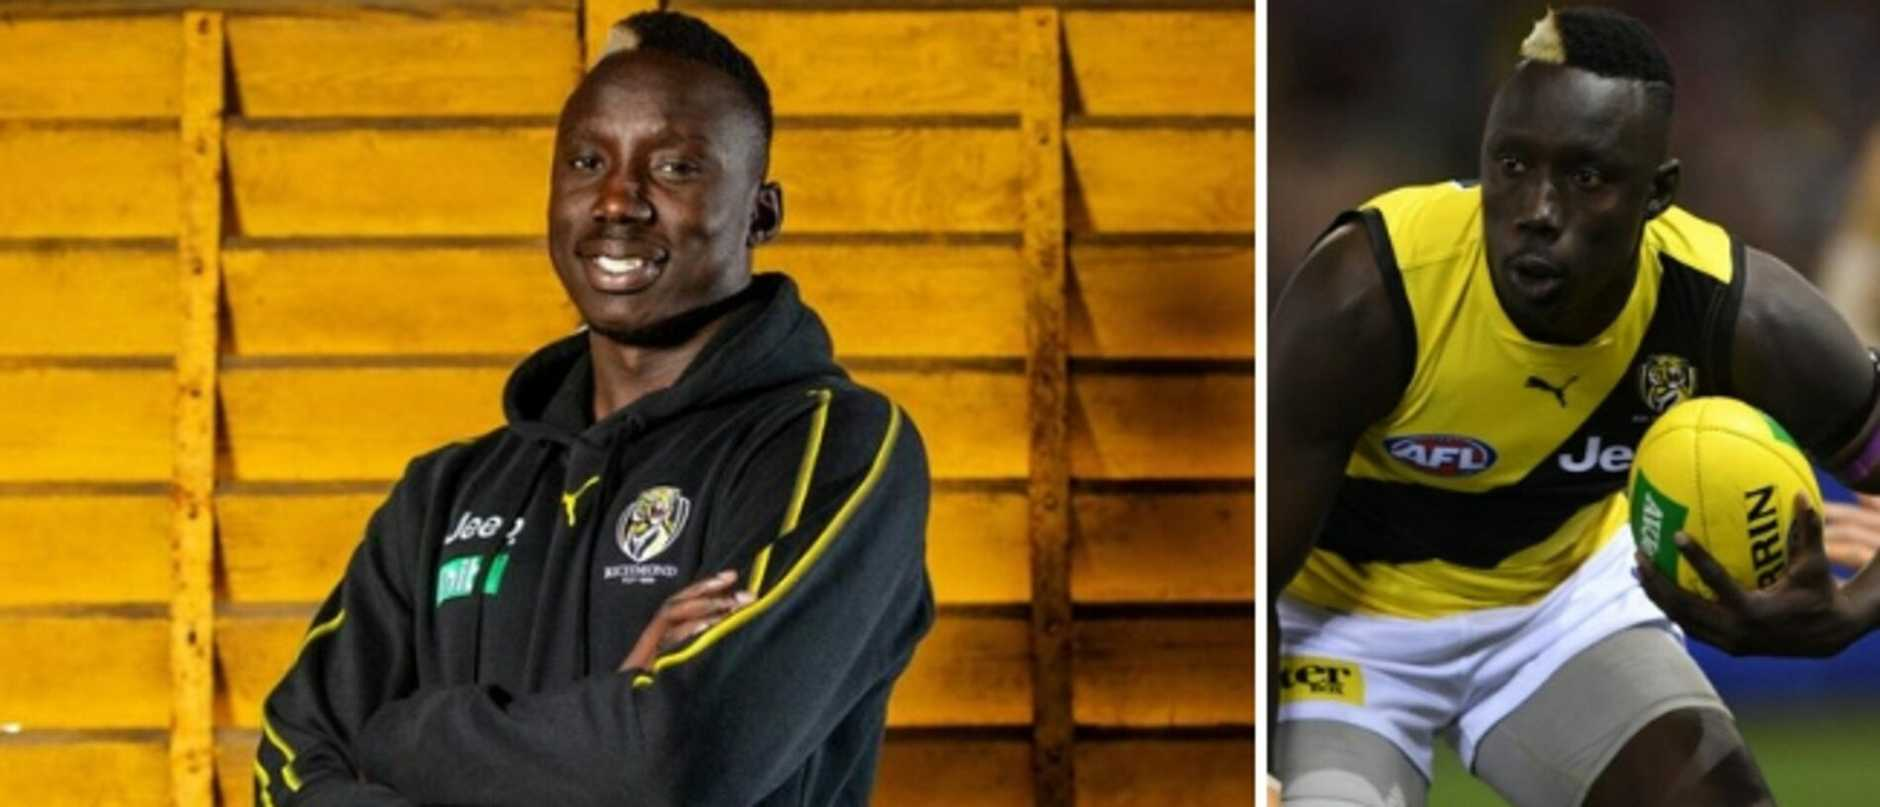 Mabior Chol is using his stature as a burgeoning Richmond star to help his community.